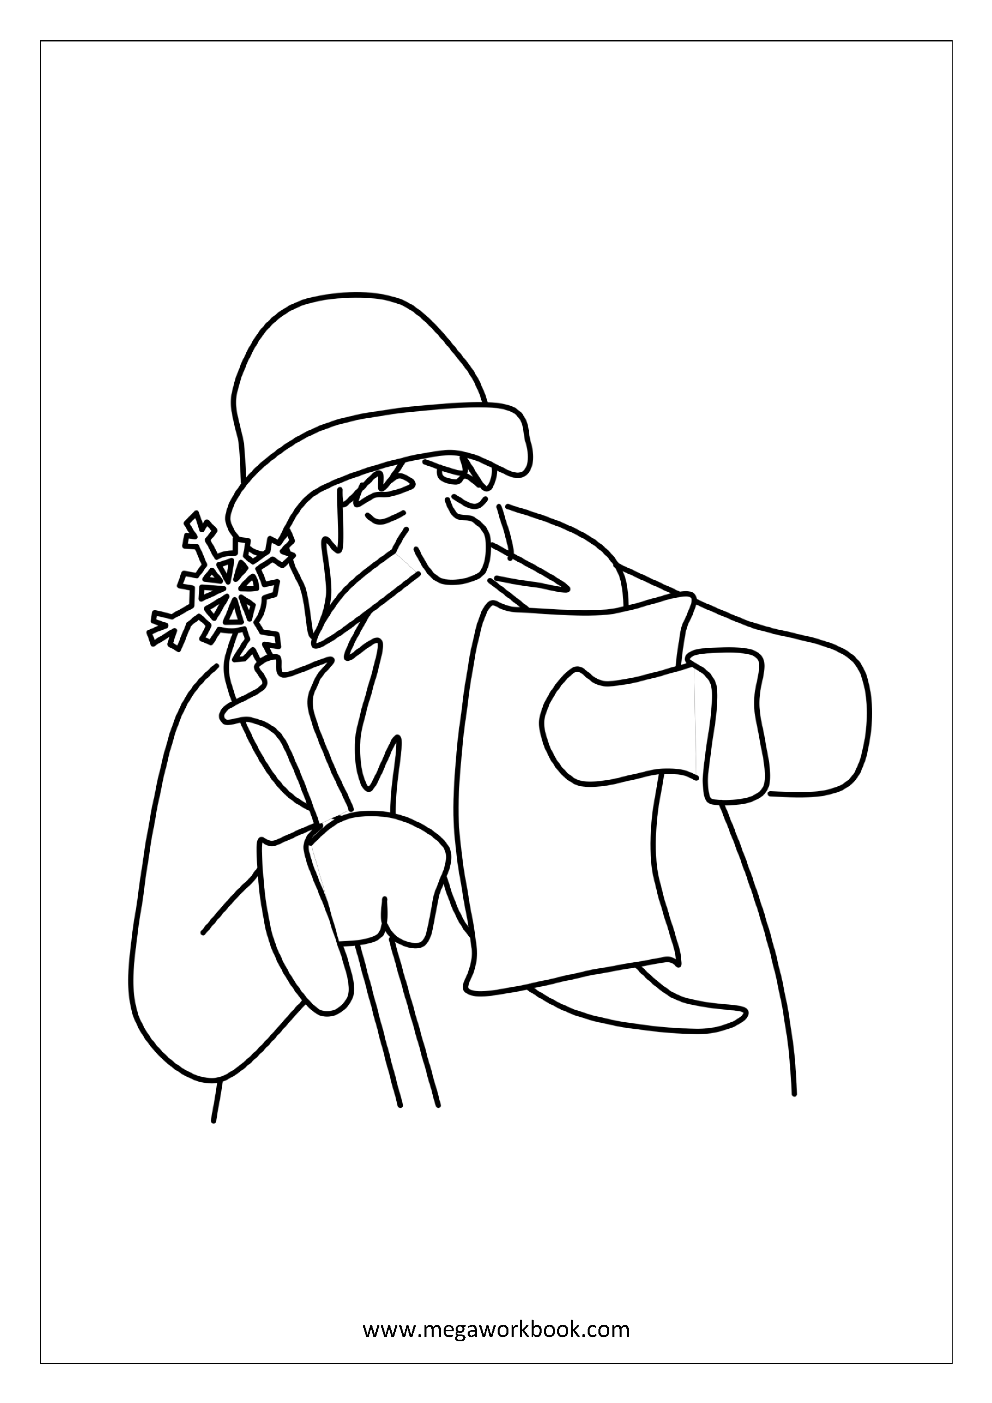 free printable coloring sheet - christmas coloring pages- santa